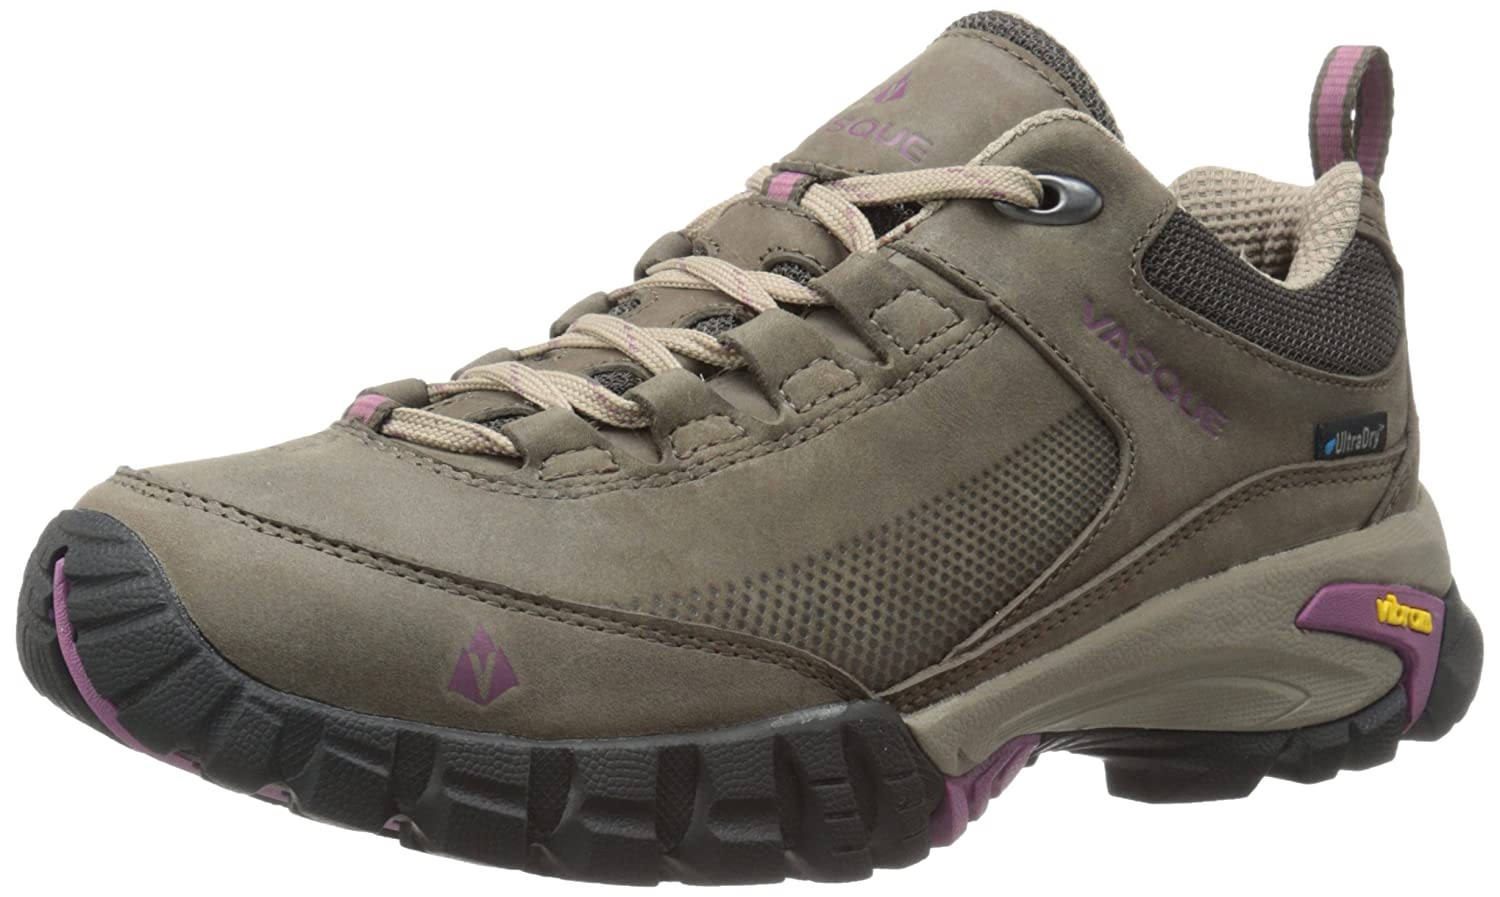 Vasque Women's Talus Trek Low UltraDry Hiking Shoe B00TYJVE8U 10 W US|Black Olive/Damson